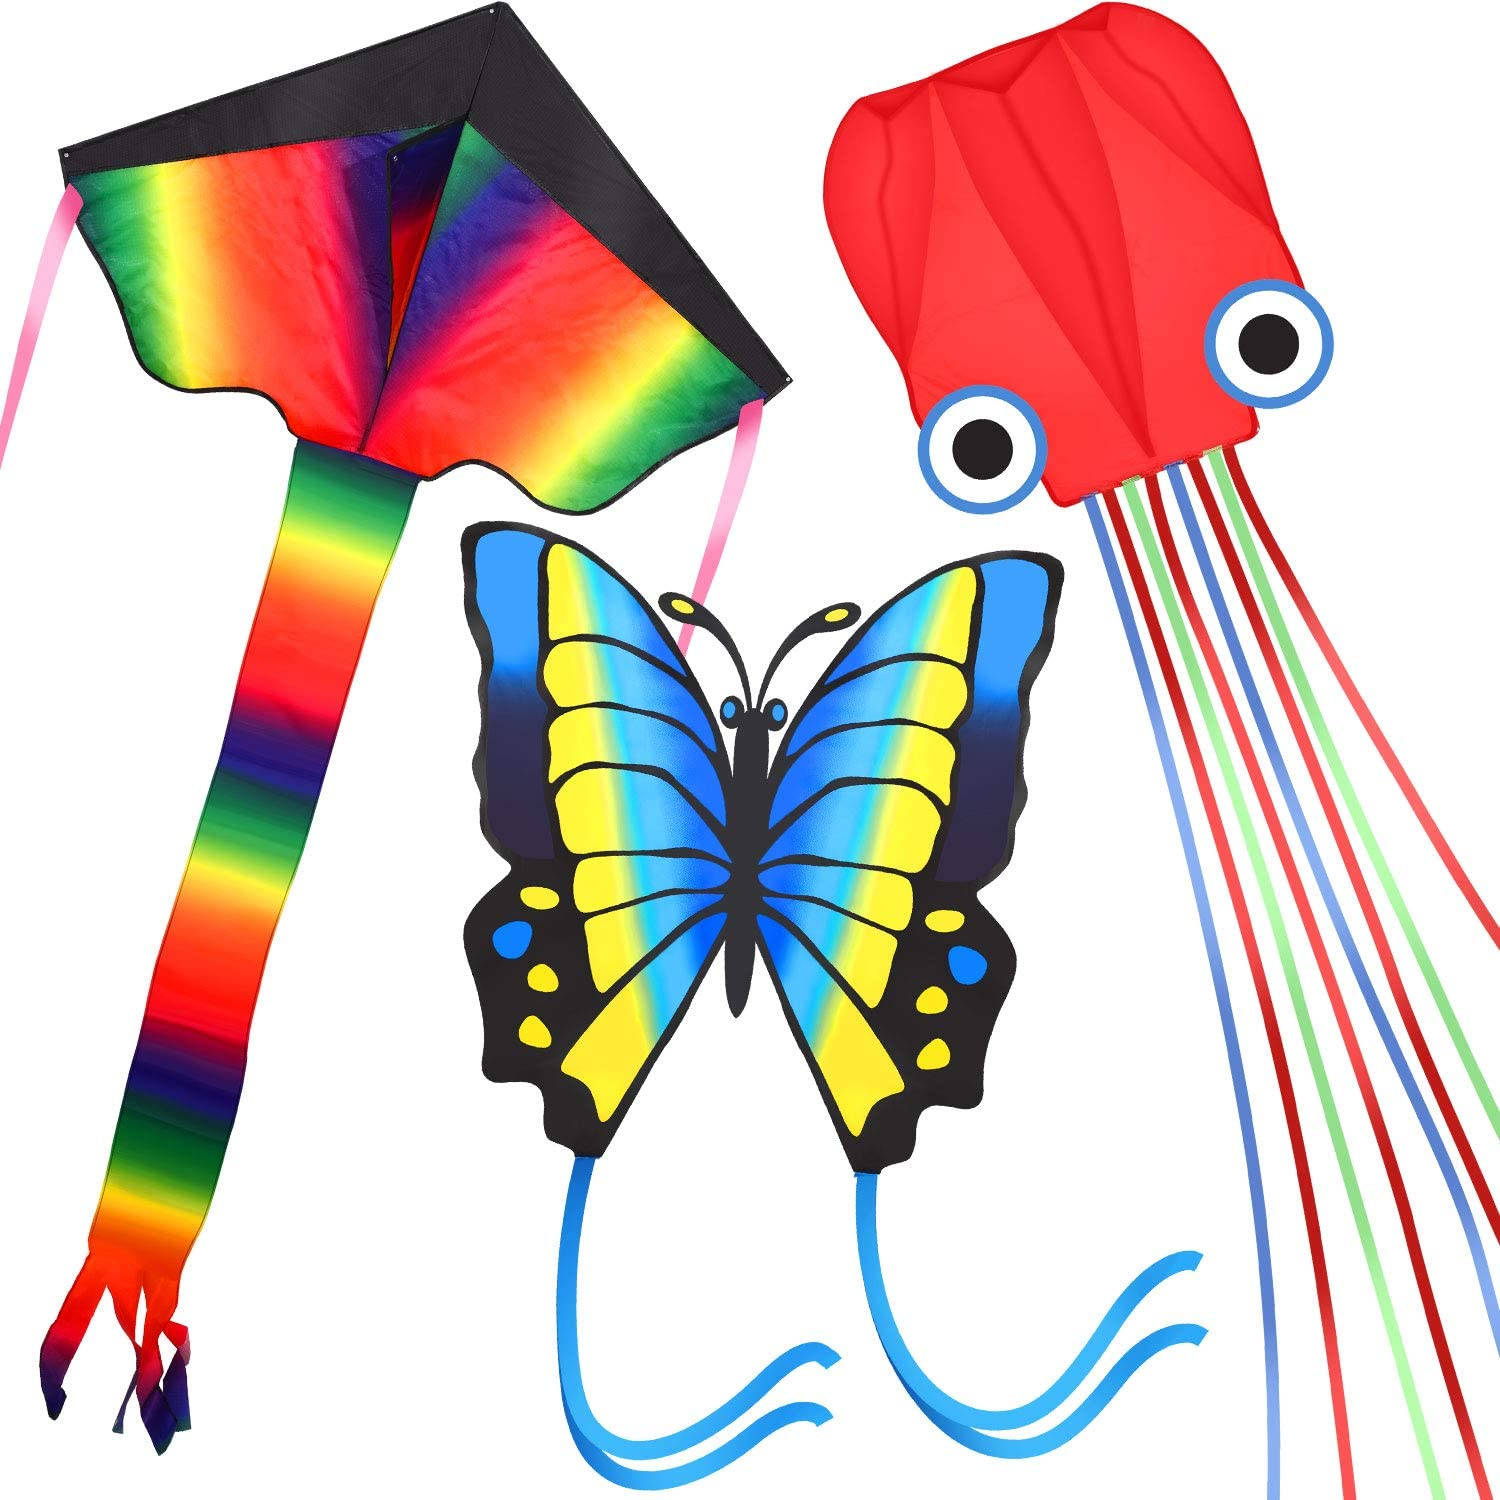 Sumind 3 Pieces Huge Kites Large Rainbow Delta Kite Blue Butterfly Kite and Red Mollusc Octopus Kite with Long Colorful Tail for Adult and Teens Outdoor Games and Activities, Great Gift